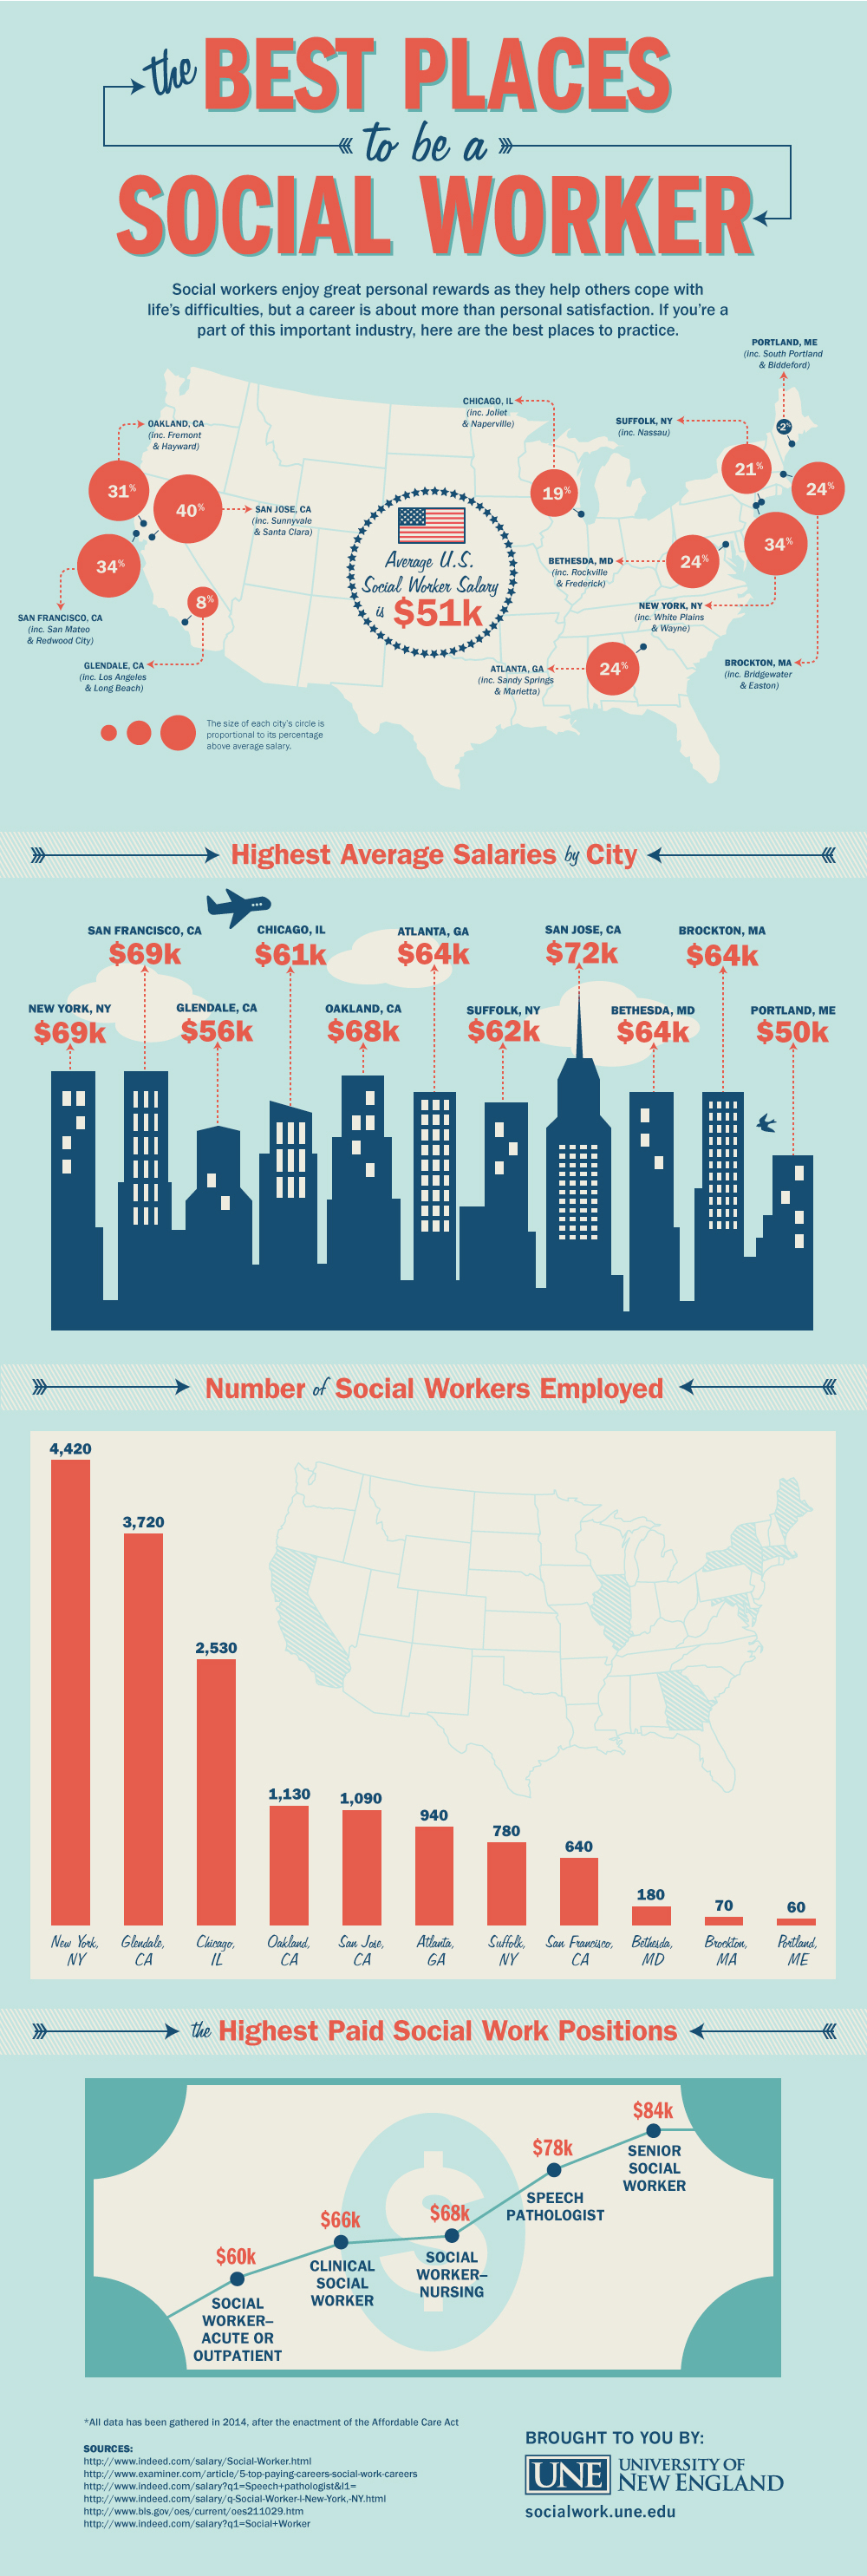 The Best Places to be a Social Worker